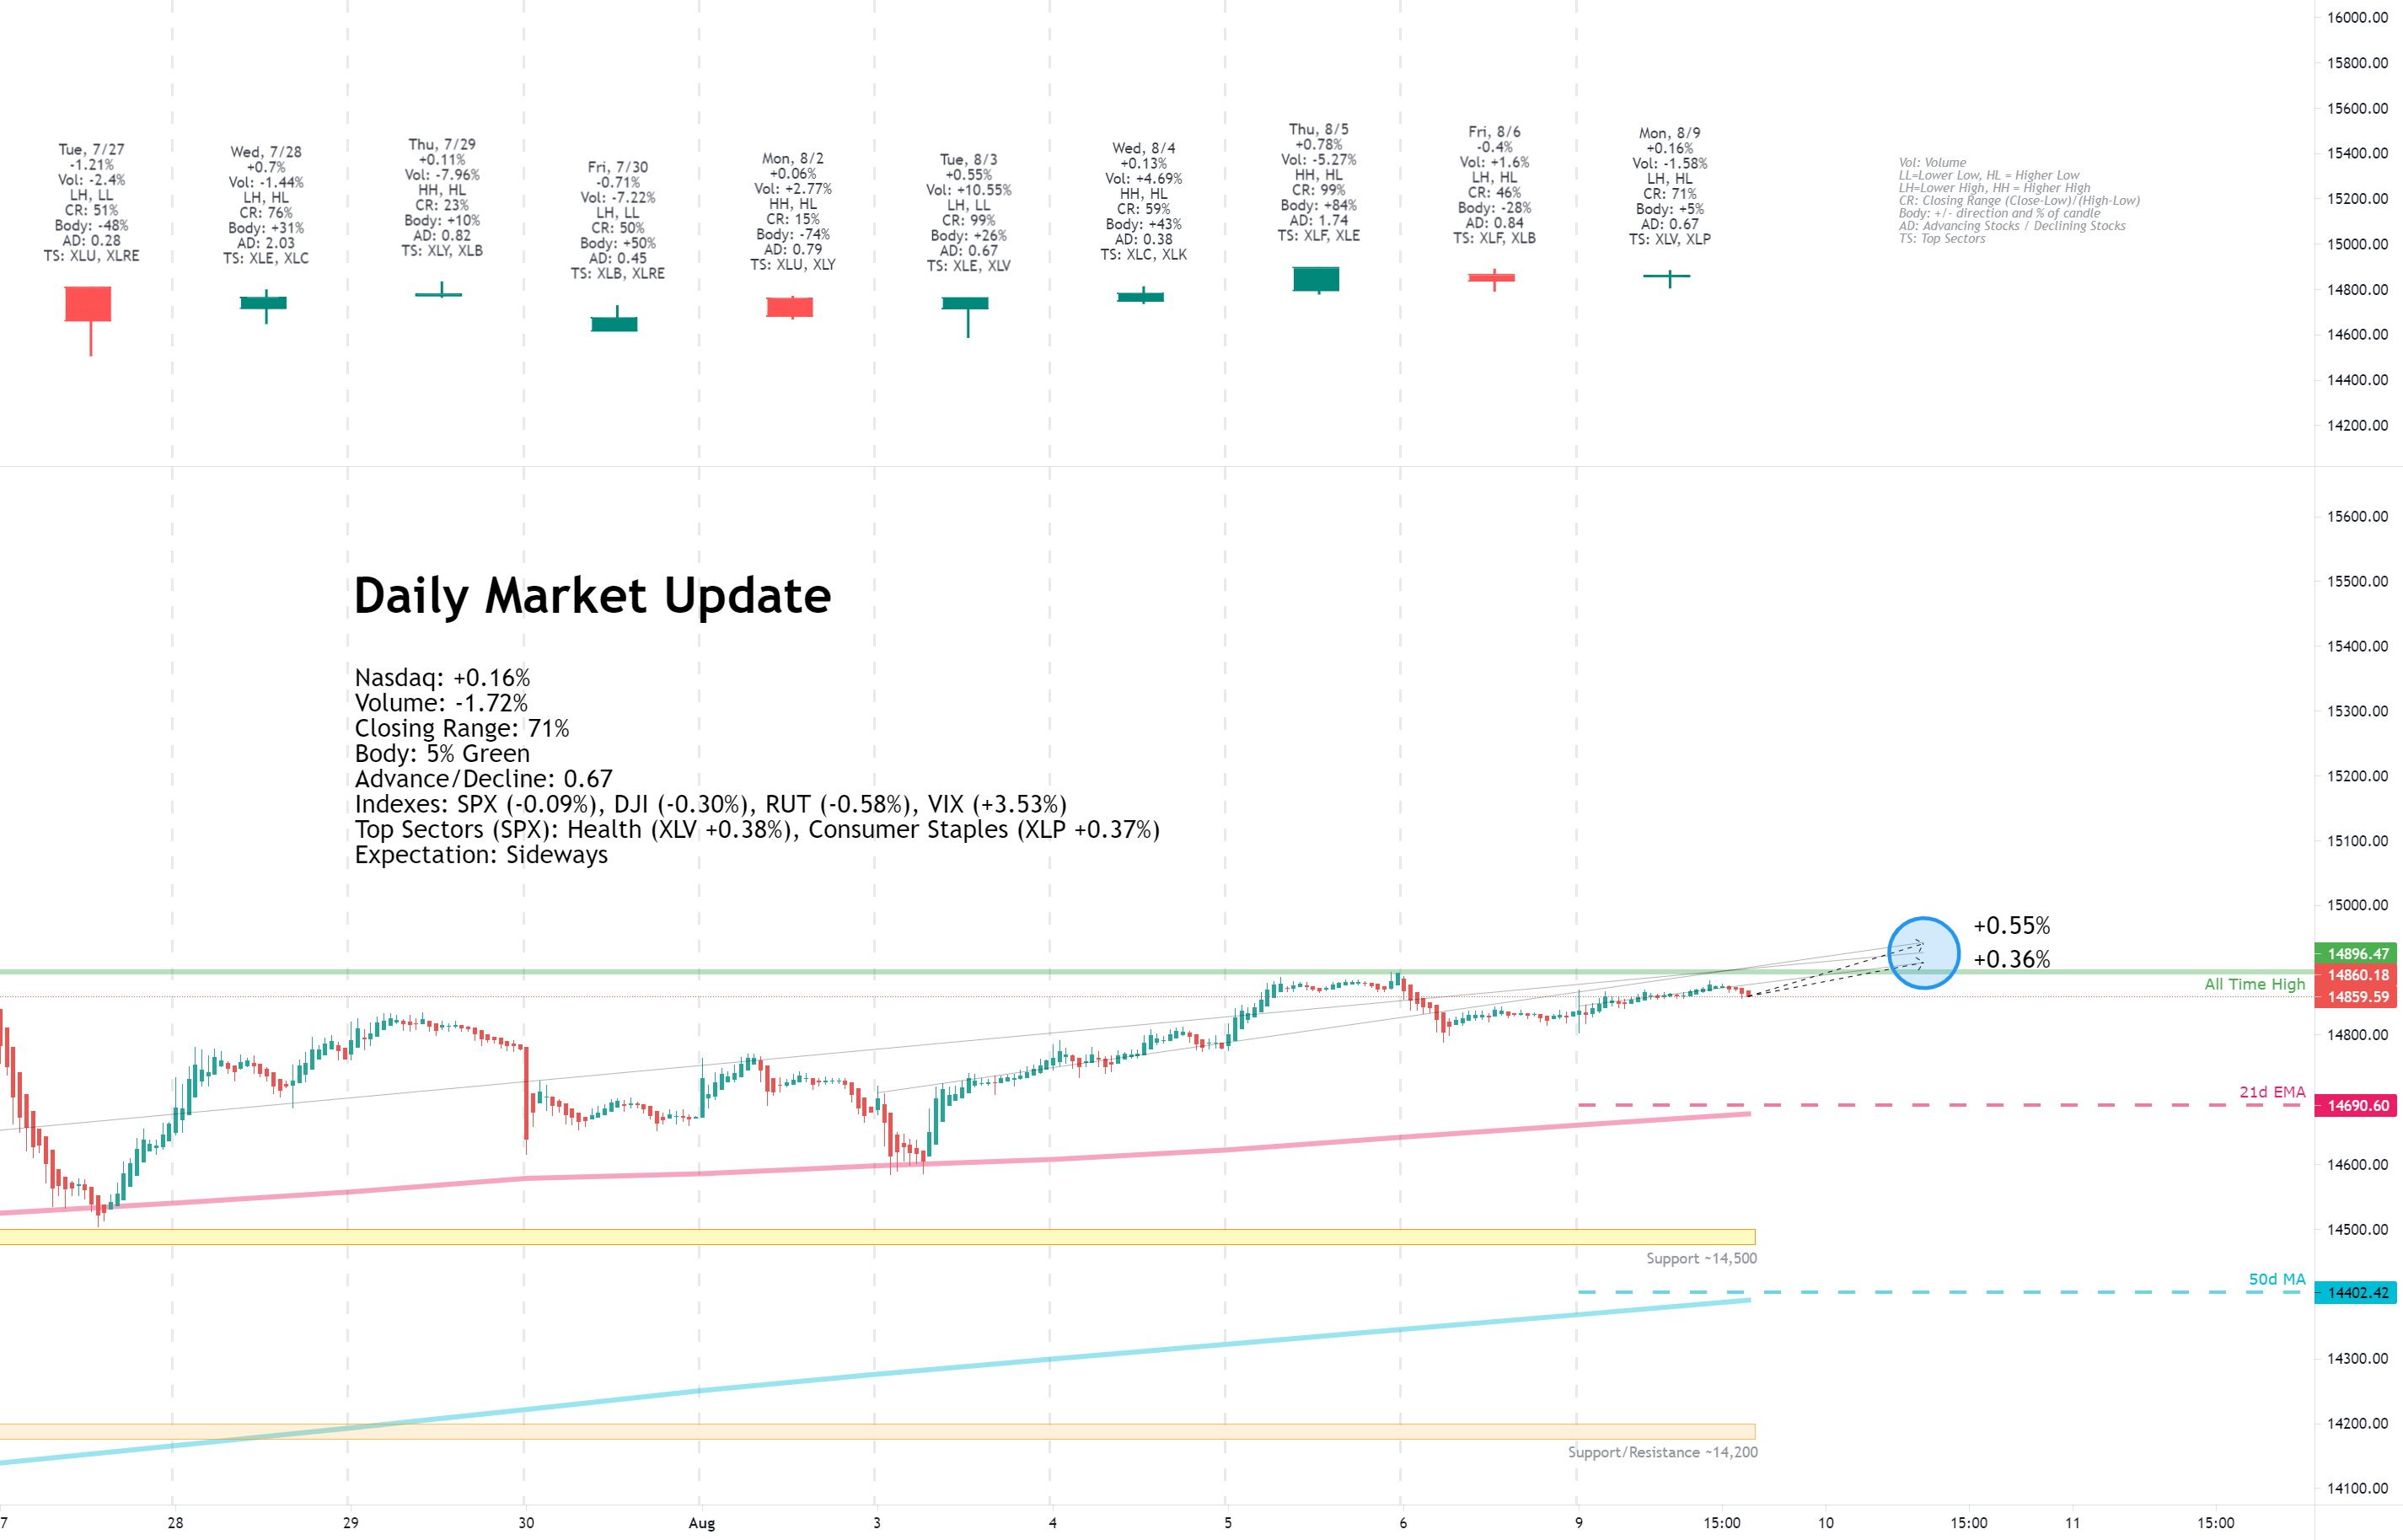 Daily Market Update for 8/9